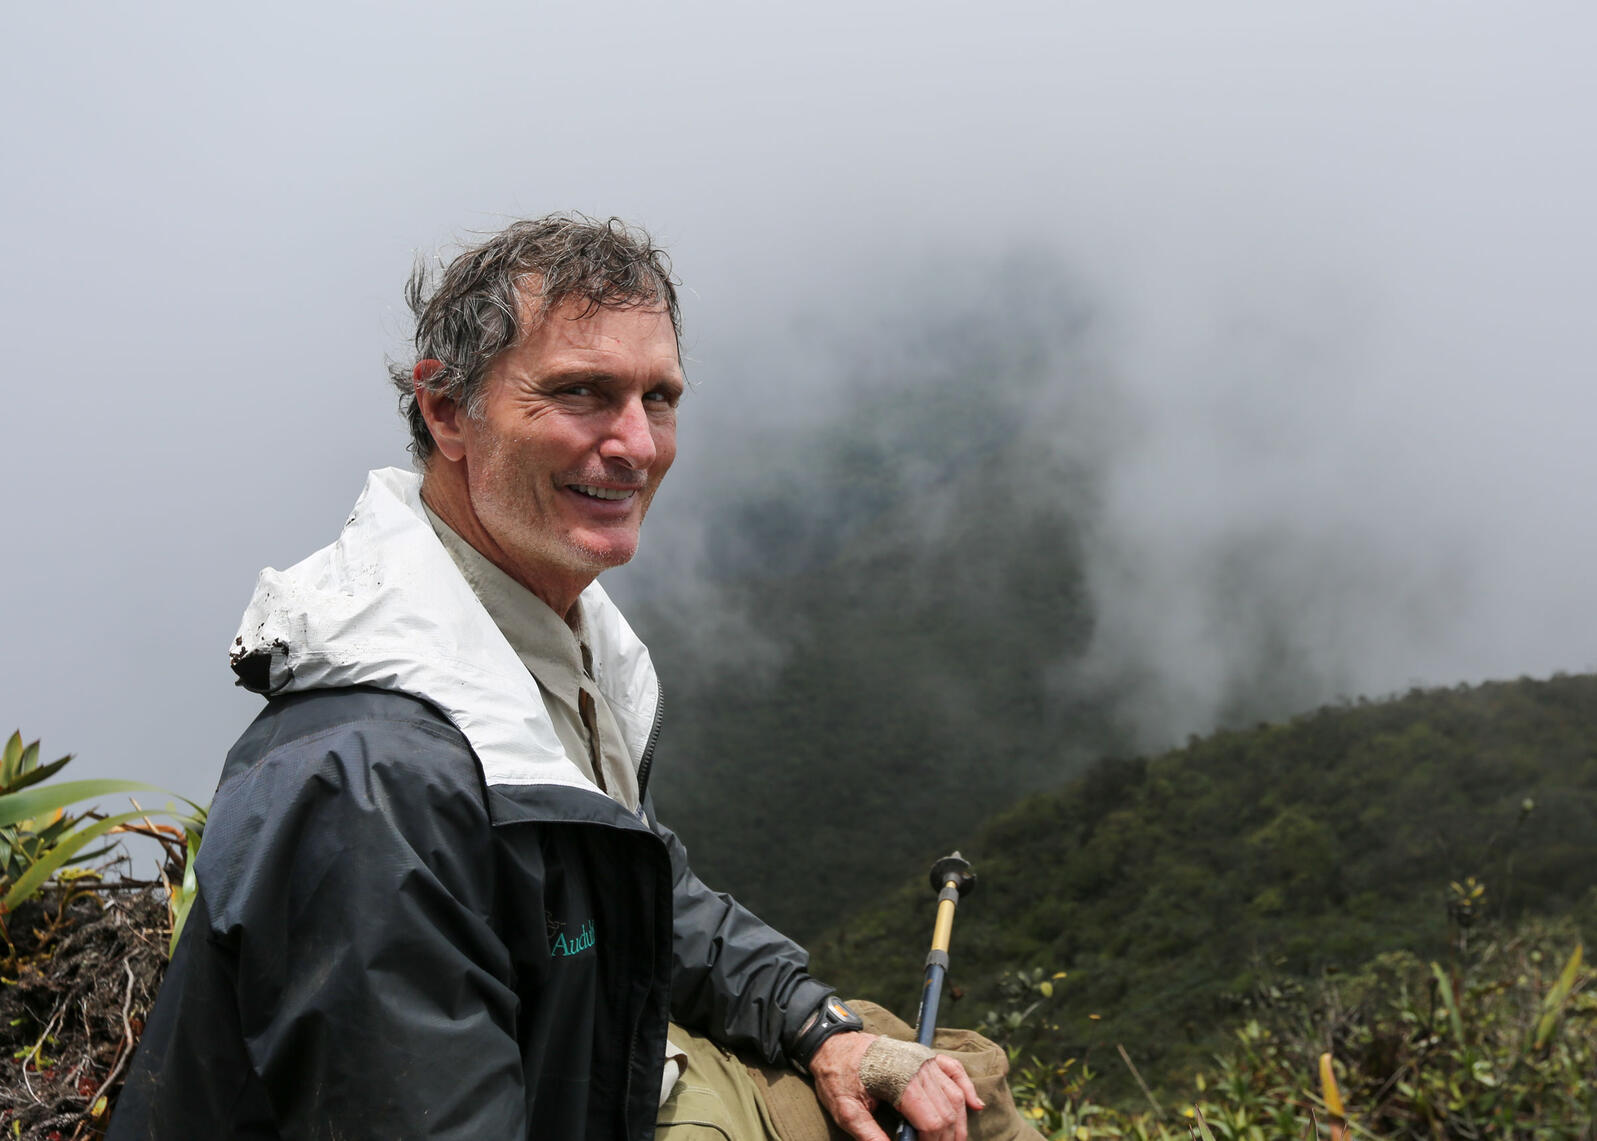 A smiling David Ford seen after hiking to the top of Mount Ayanganna in western Guyana, South America with fellow Audubon board member Holt Thrasher (not pictured). Courtesy of Holt Thrasher